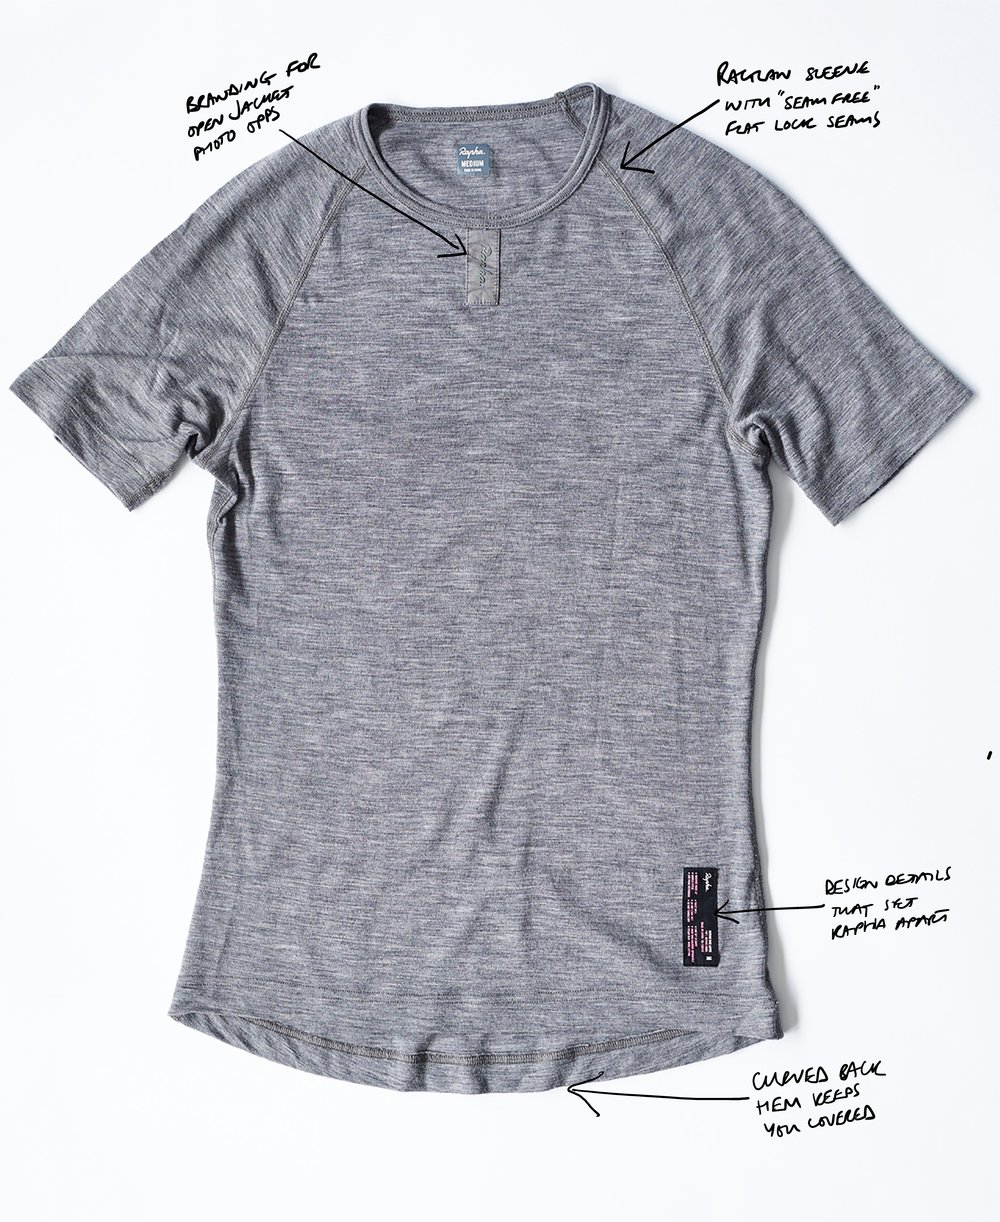 rapha base layer main image written-page-001.jpg